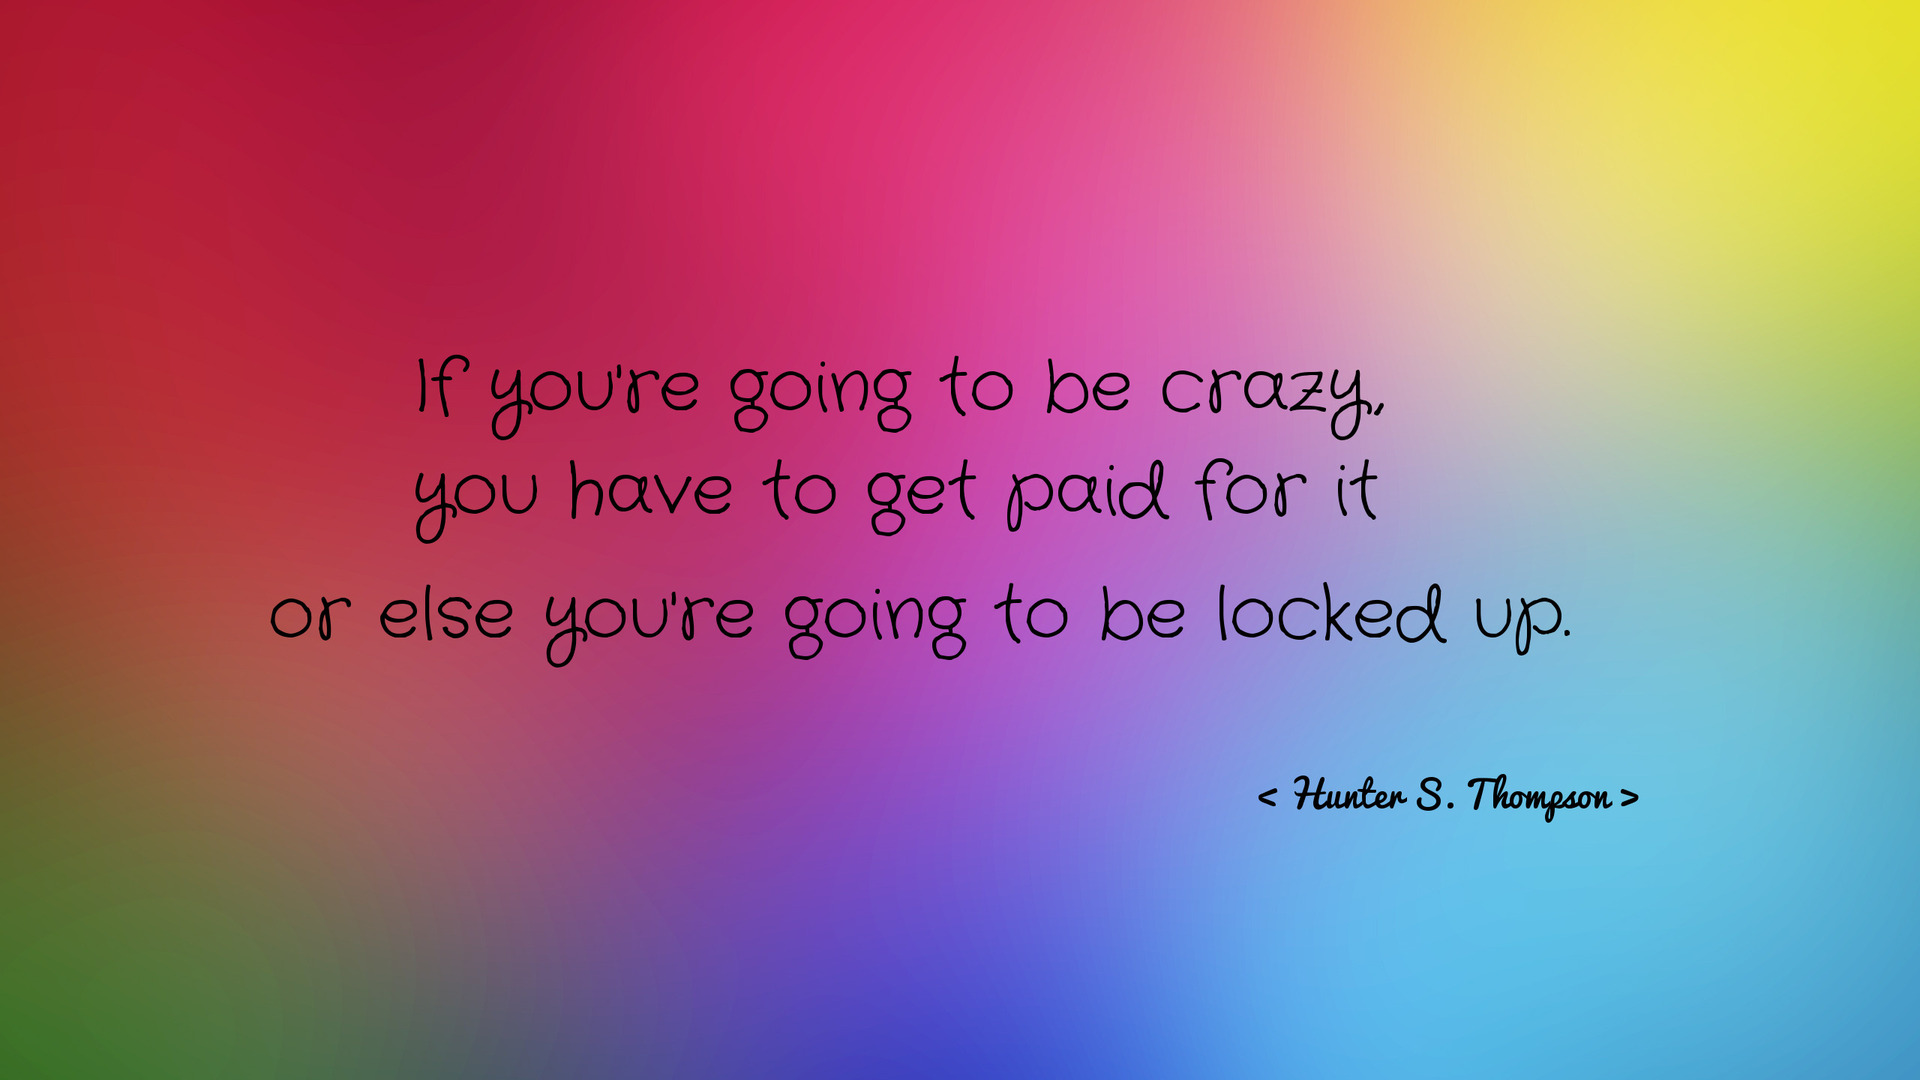 Funny Quotes Pinterest Love: Funny Quotes Crazy Love. QuotesGram